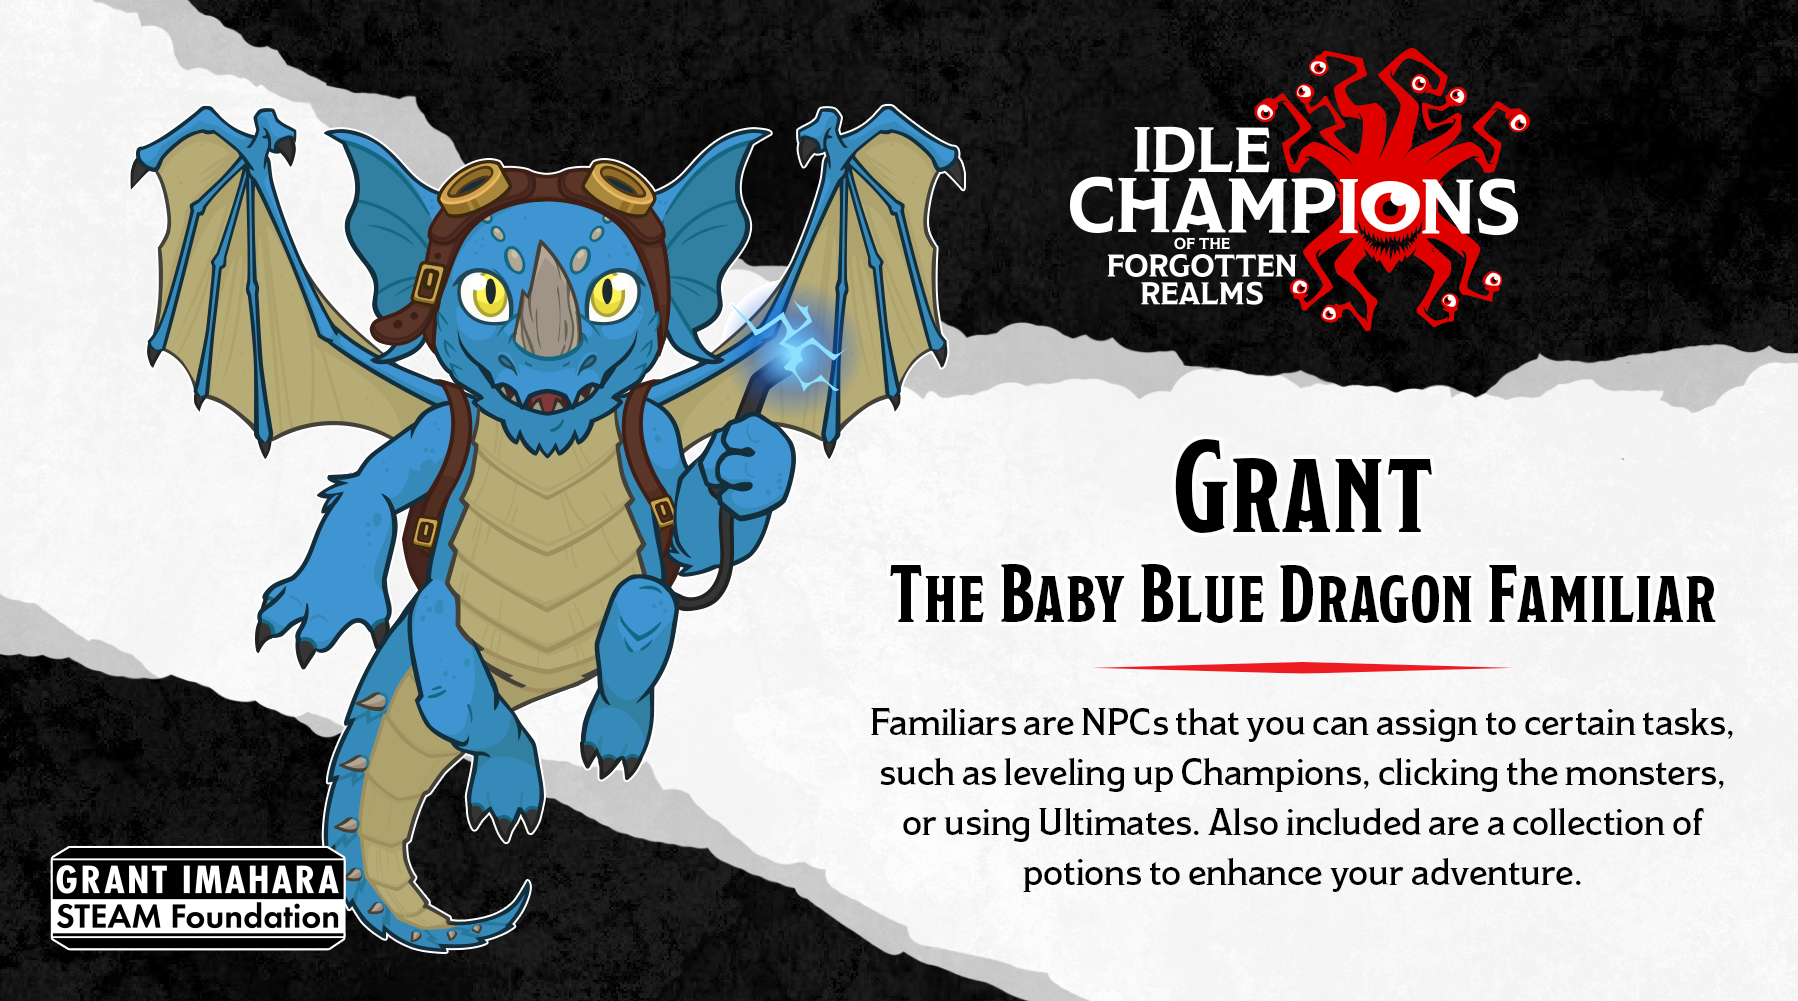 Dungeons & Dragons Grant Baby Blue Dragon Familiar Grant Imahara STEAM Foundation